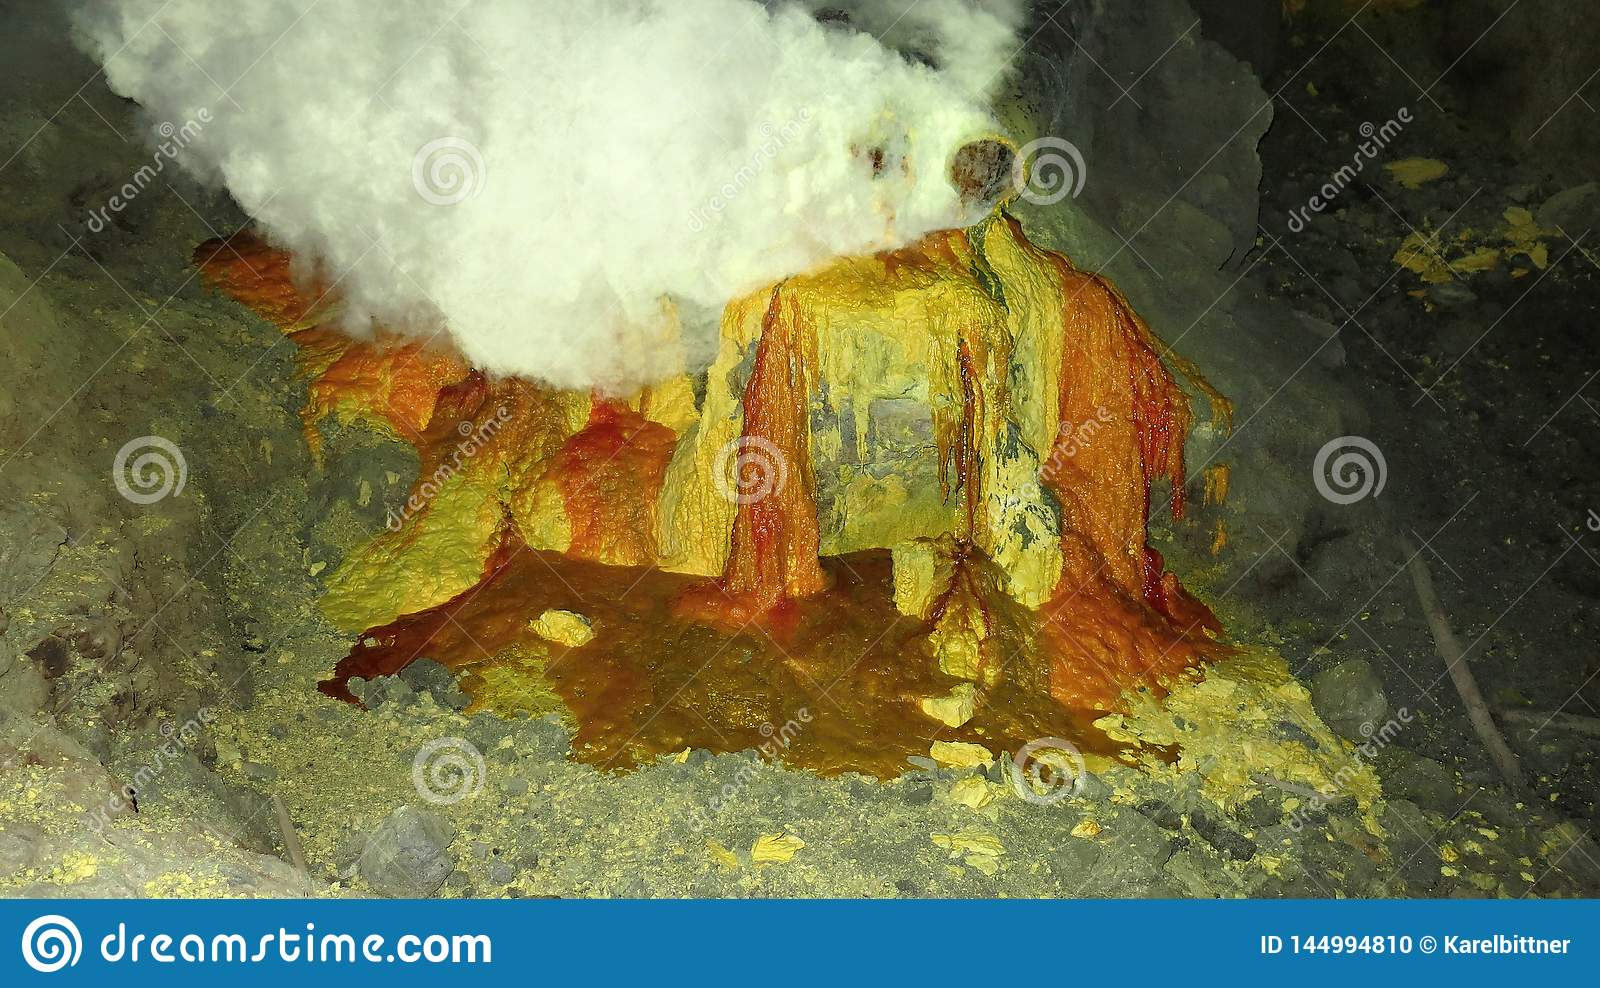 Raw sulfur mining in the crater of Kawah Ijen active volcano on Java